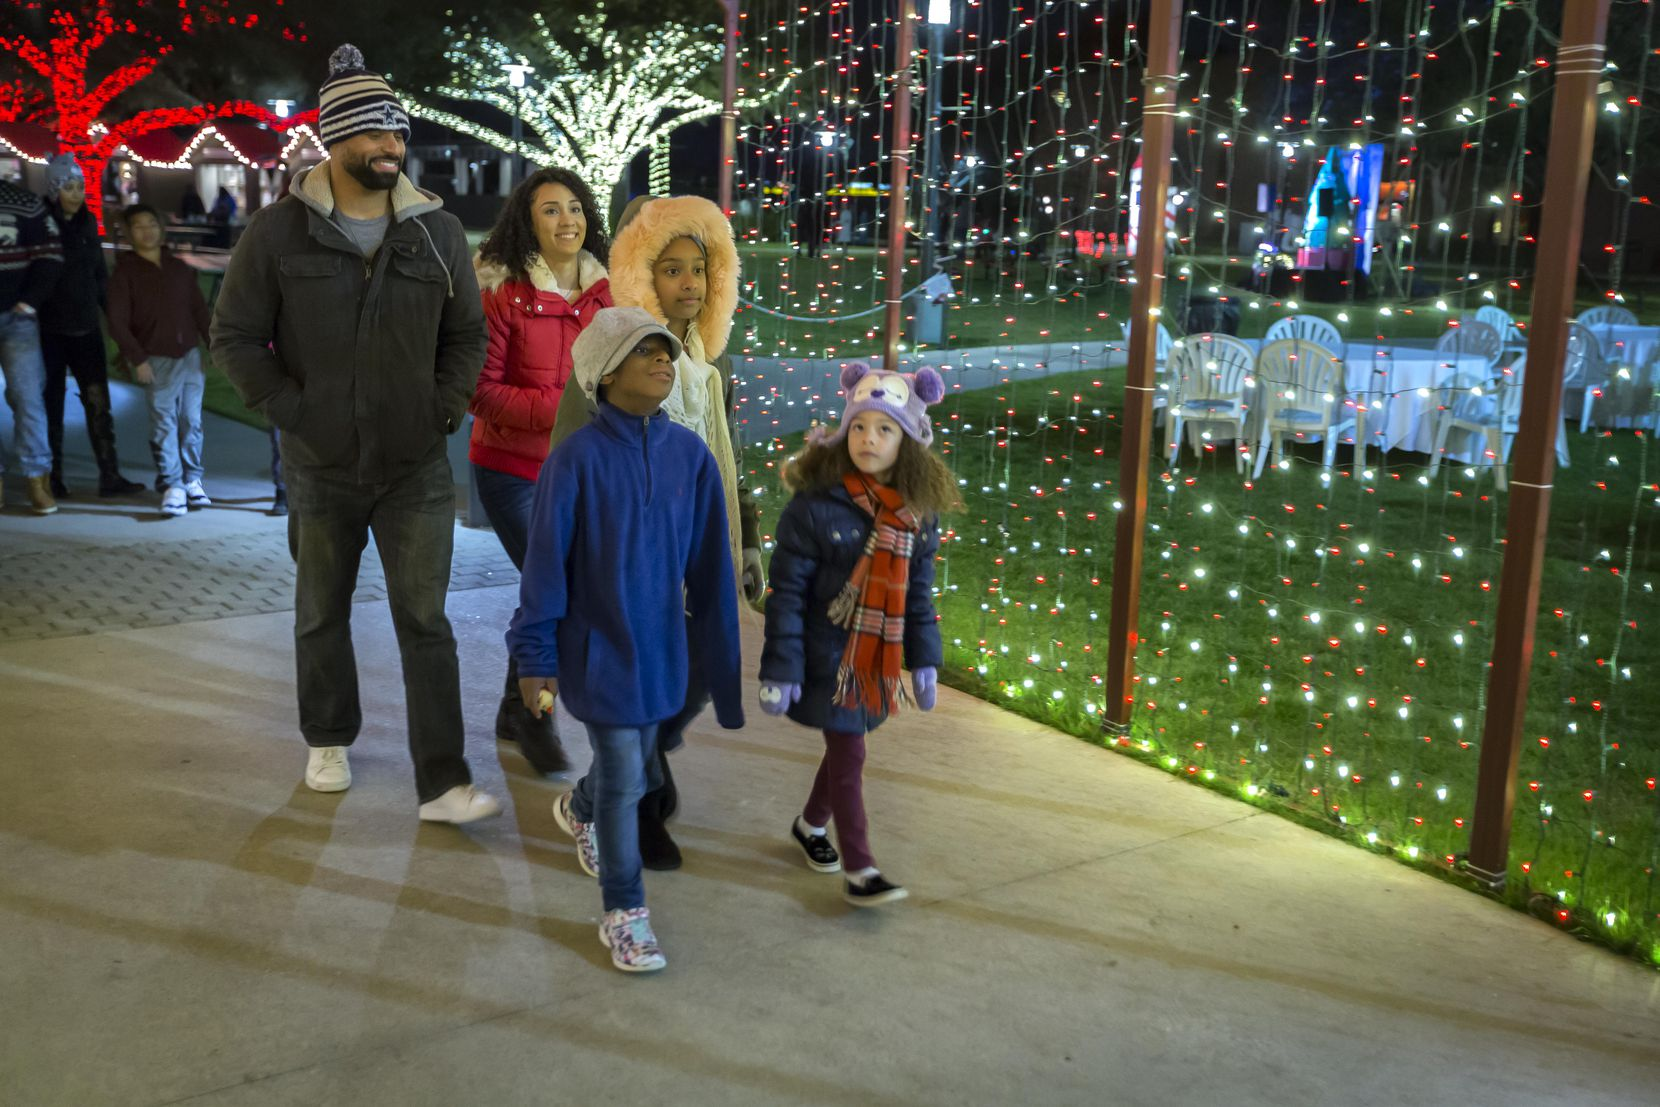 Christmas at the Anatole will include Peppermint Park, an outdoor holiday theme park, for children and their families.